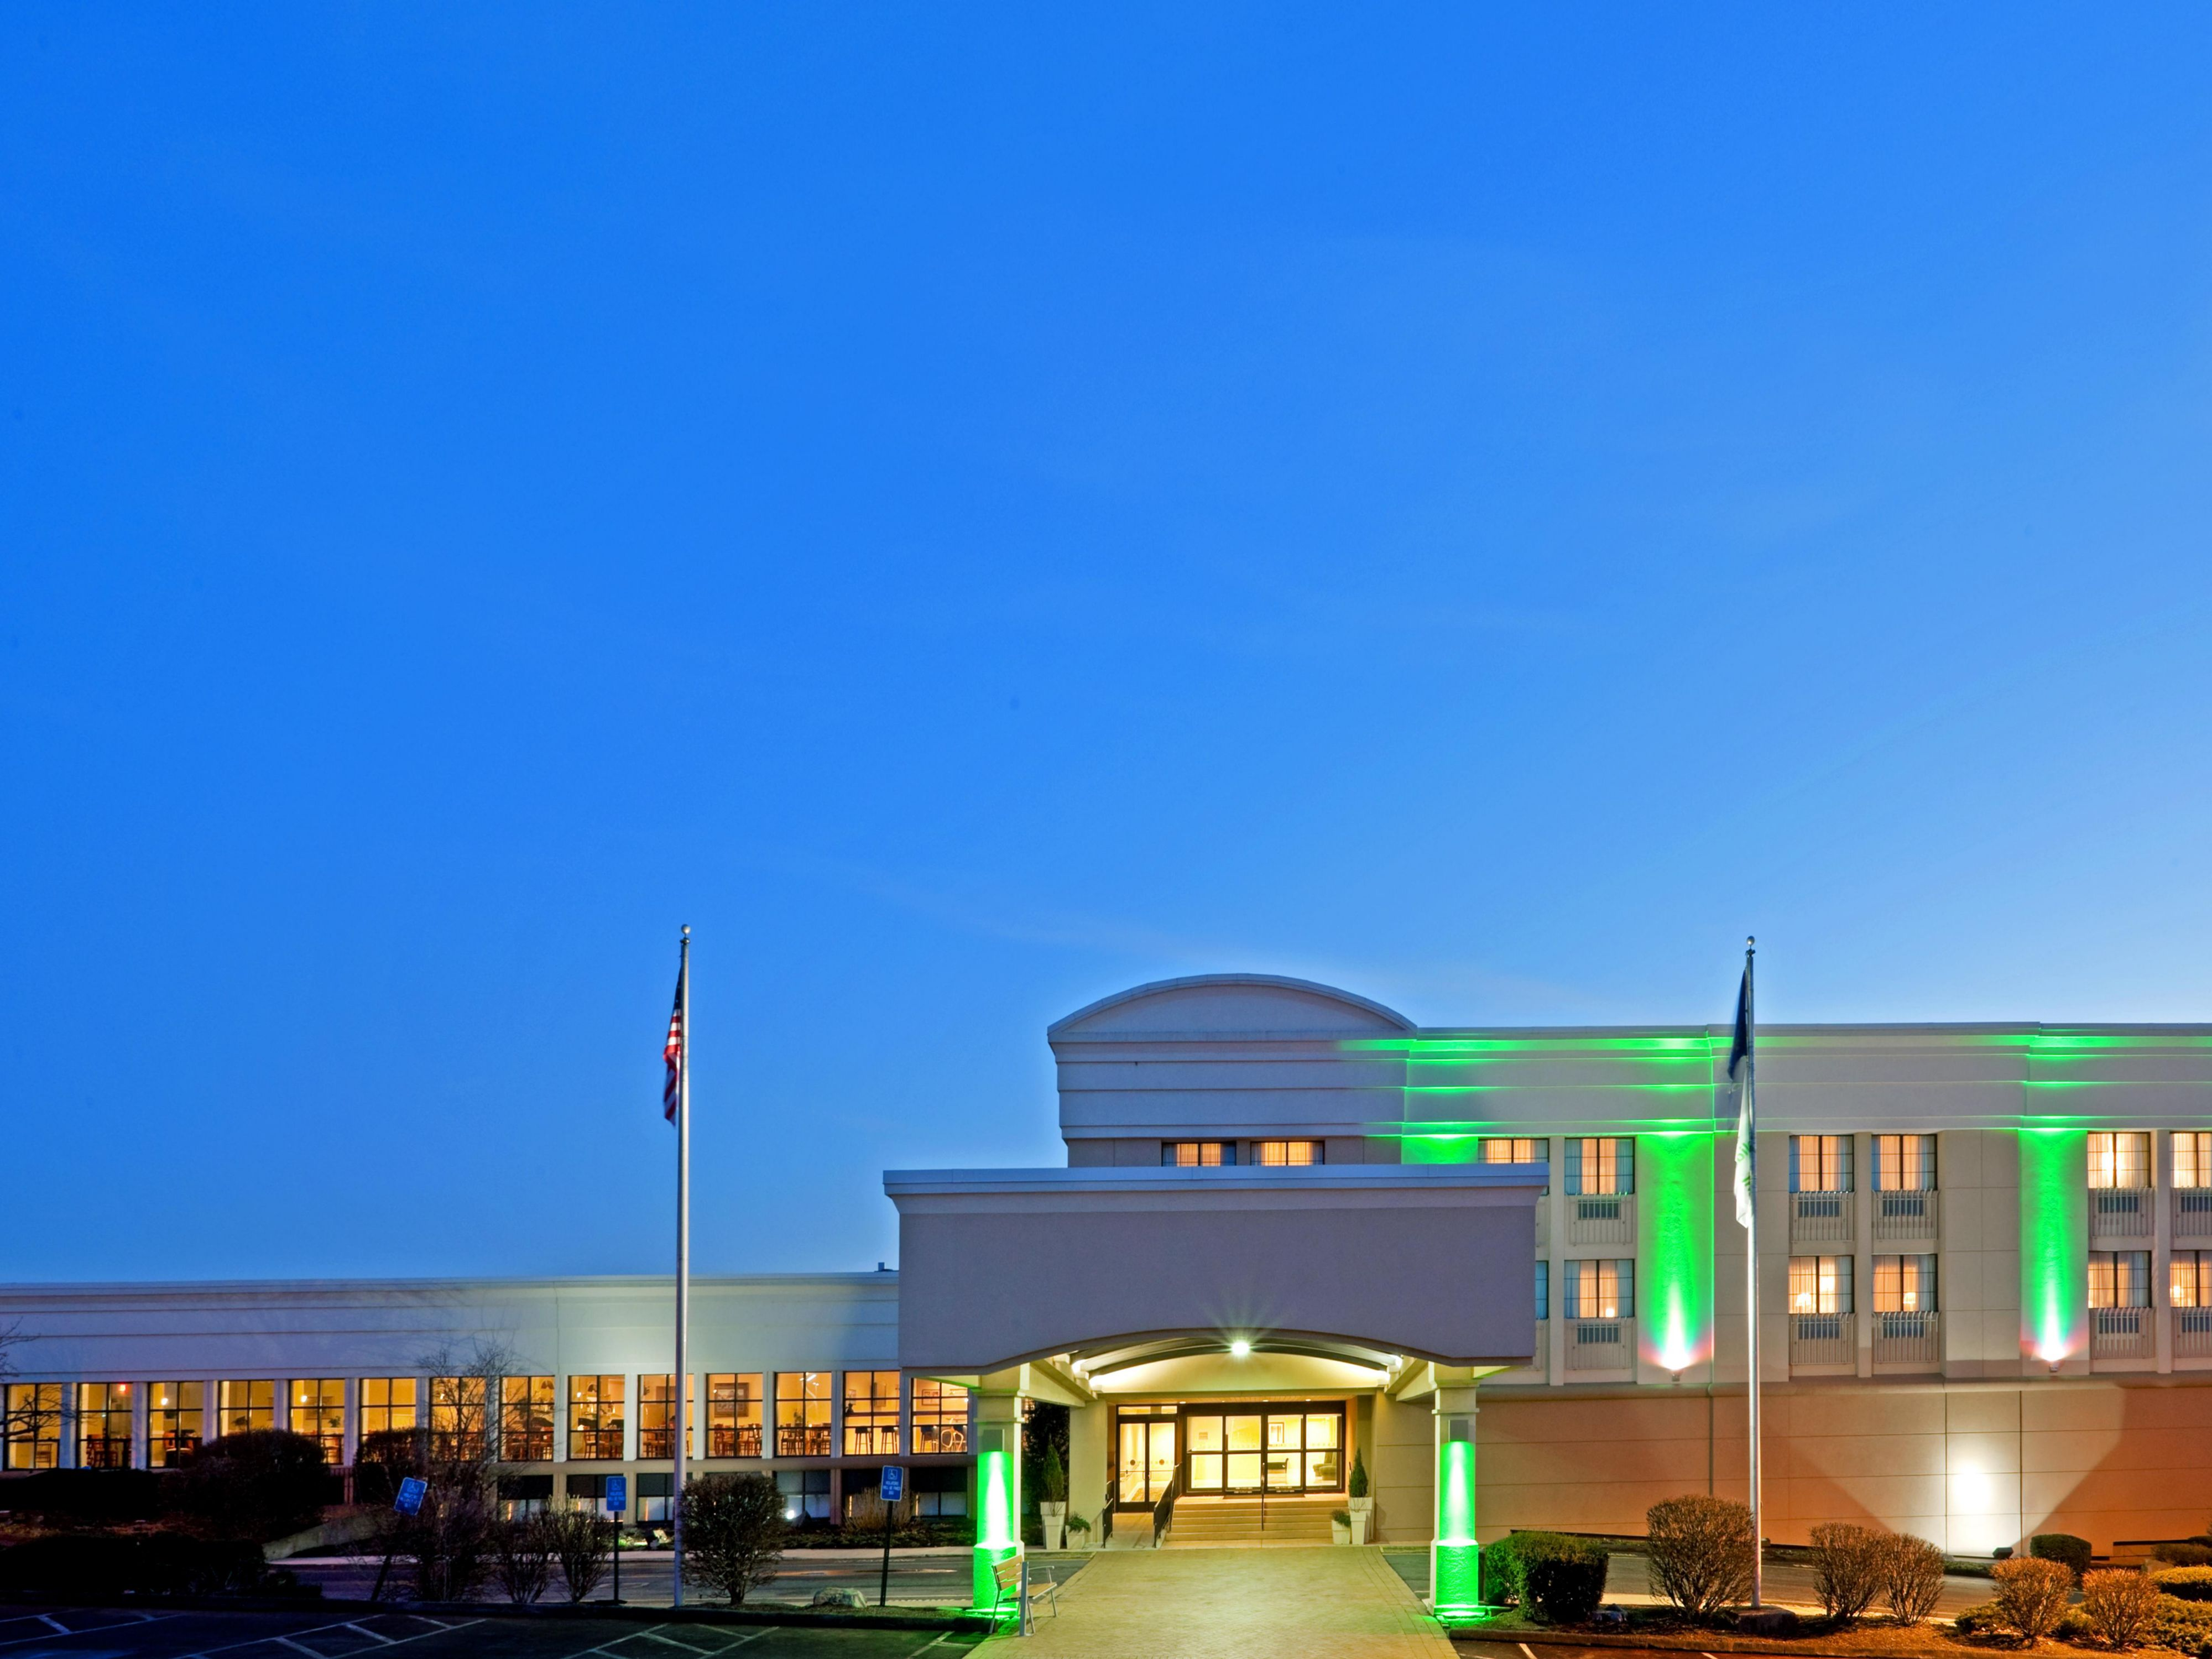 Welcome to the Holiday Inn Harrisburg East